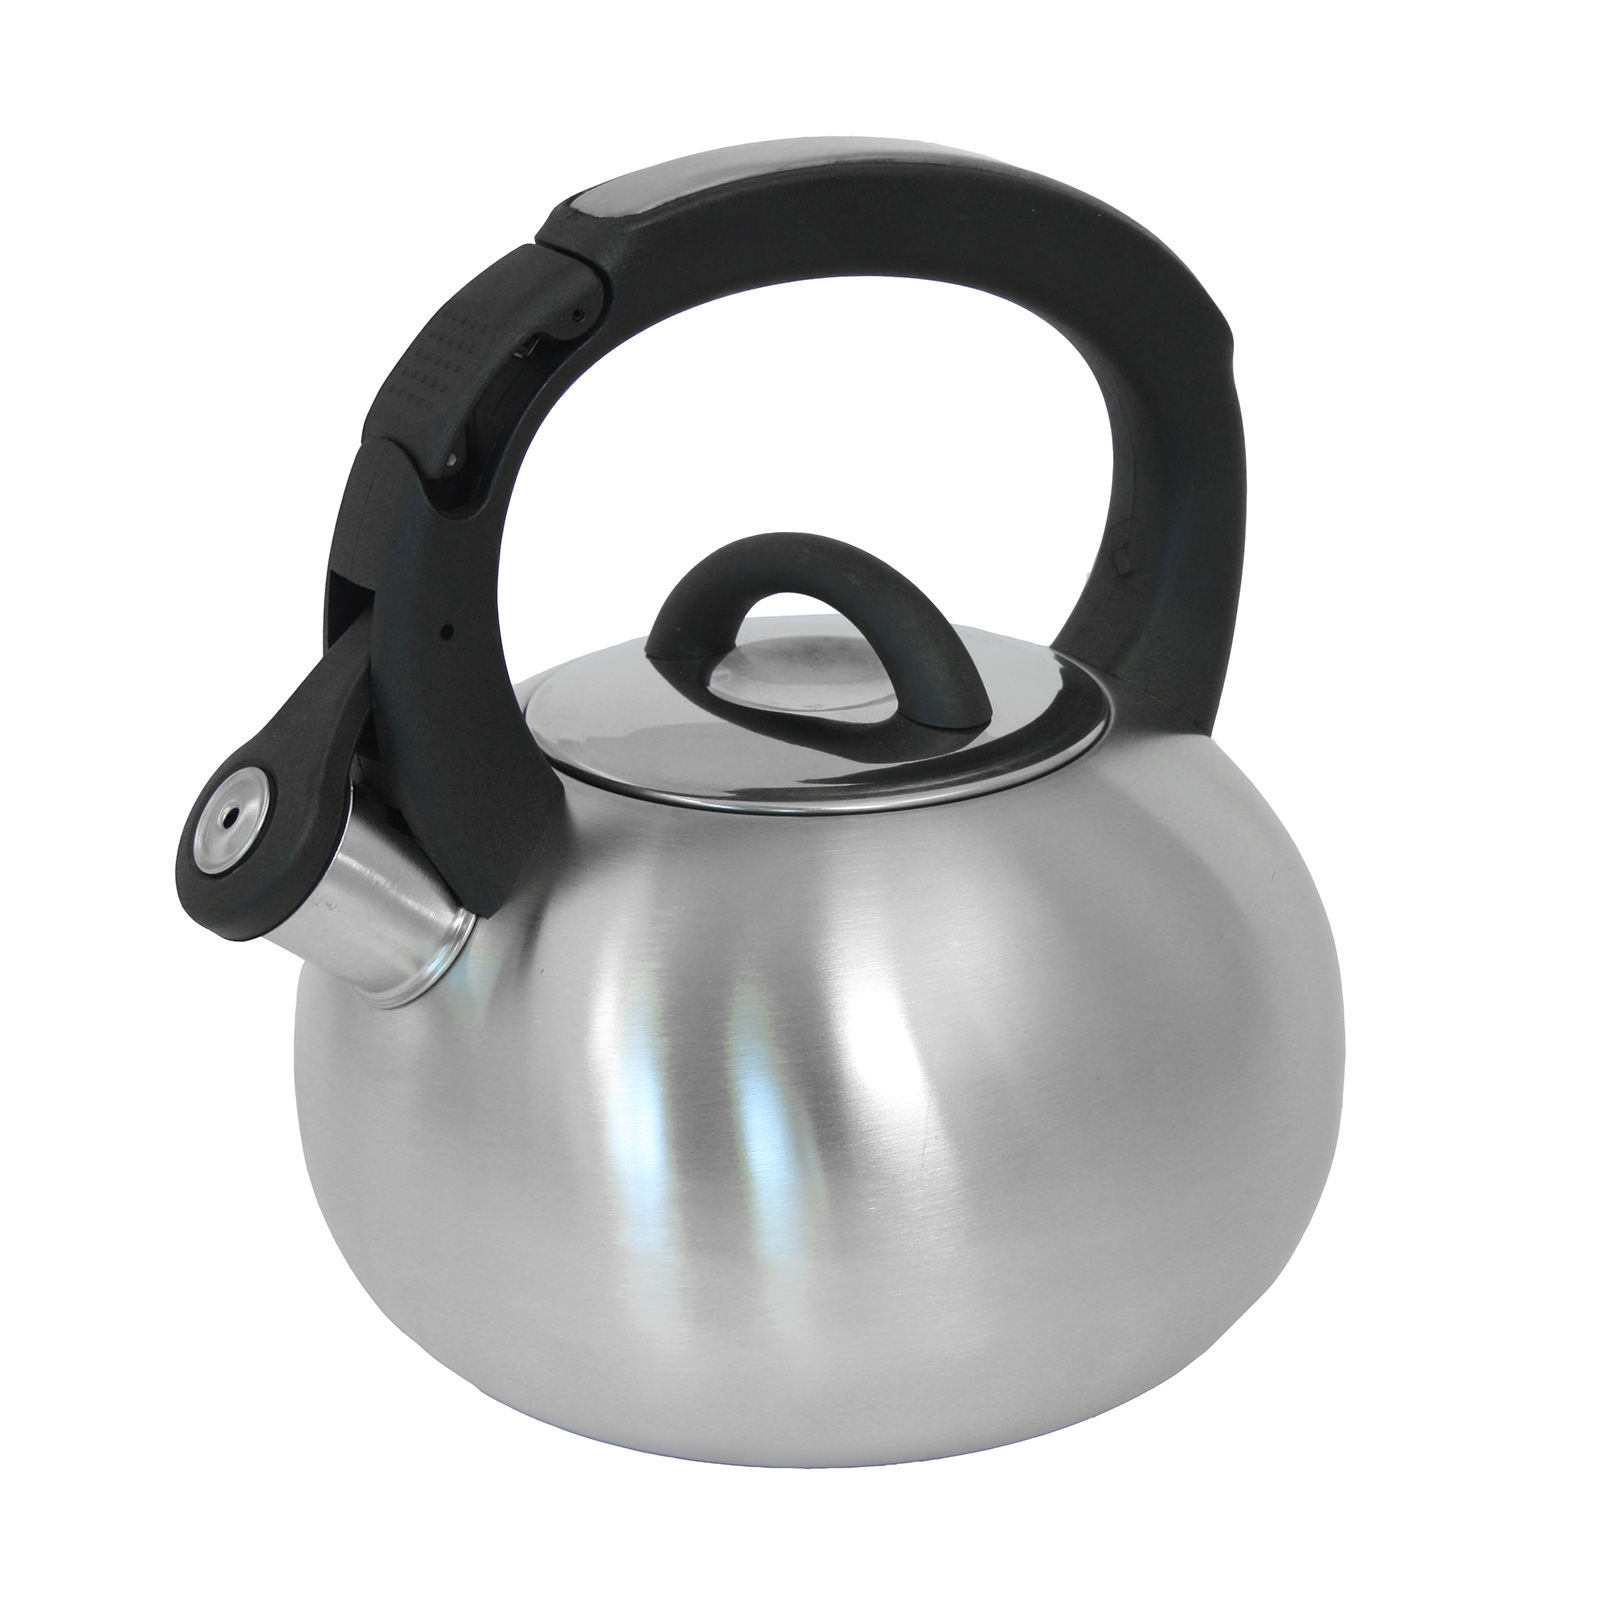 Mr. Coffee Piper Shine 2 Qt Whistling Tea Kettle, Brushed Stainless Steel